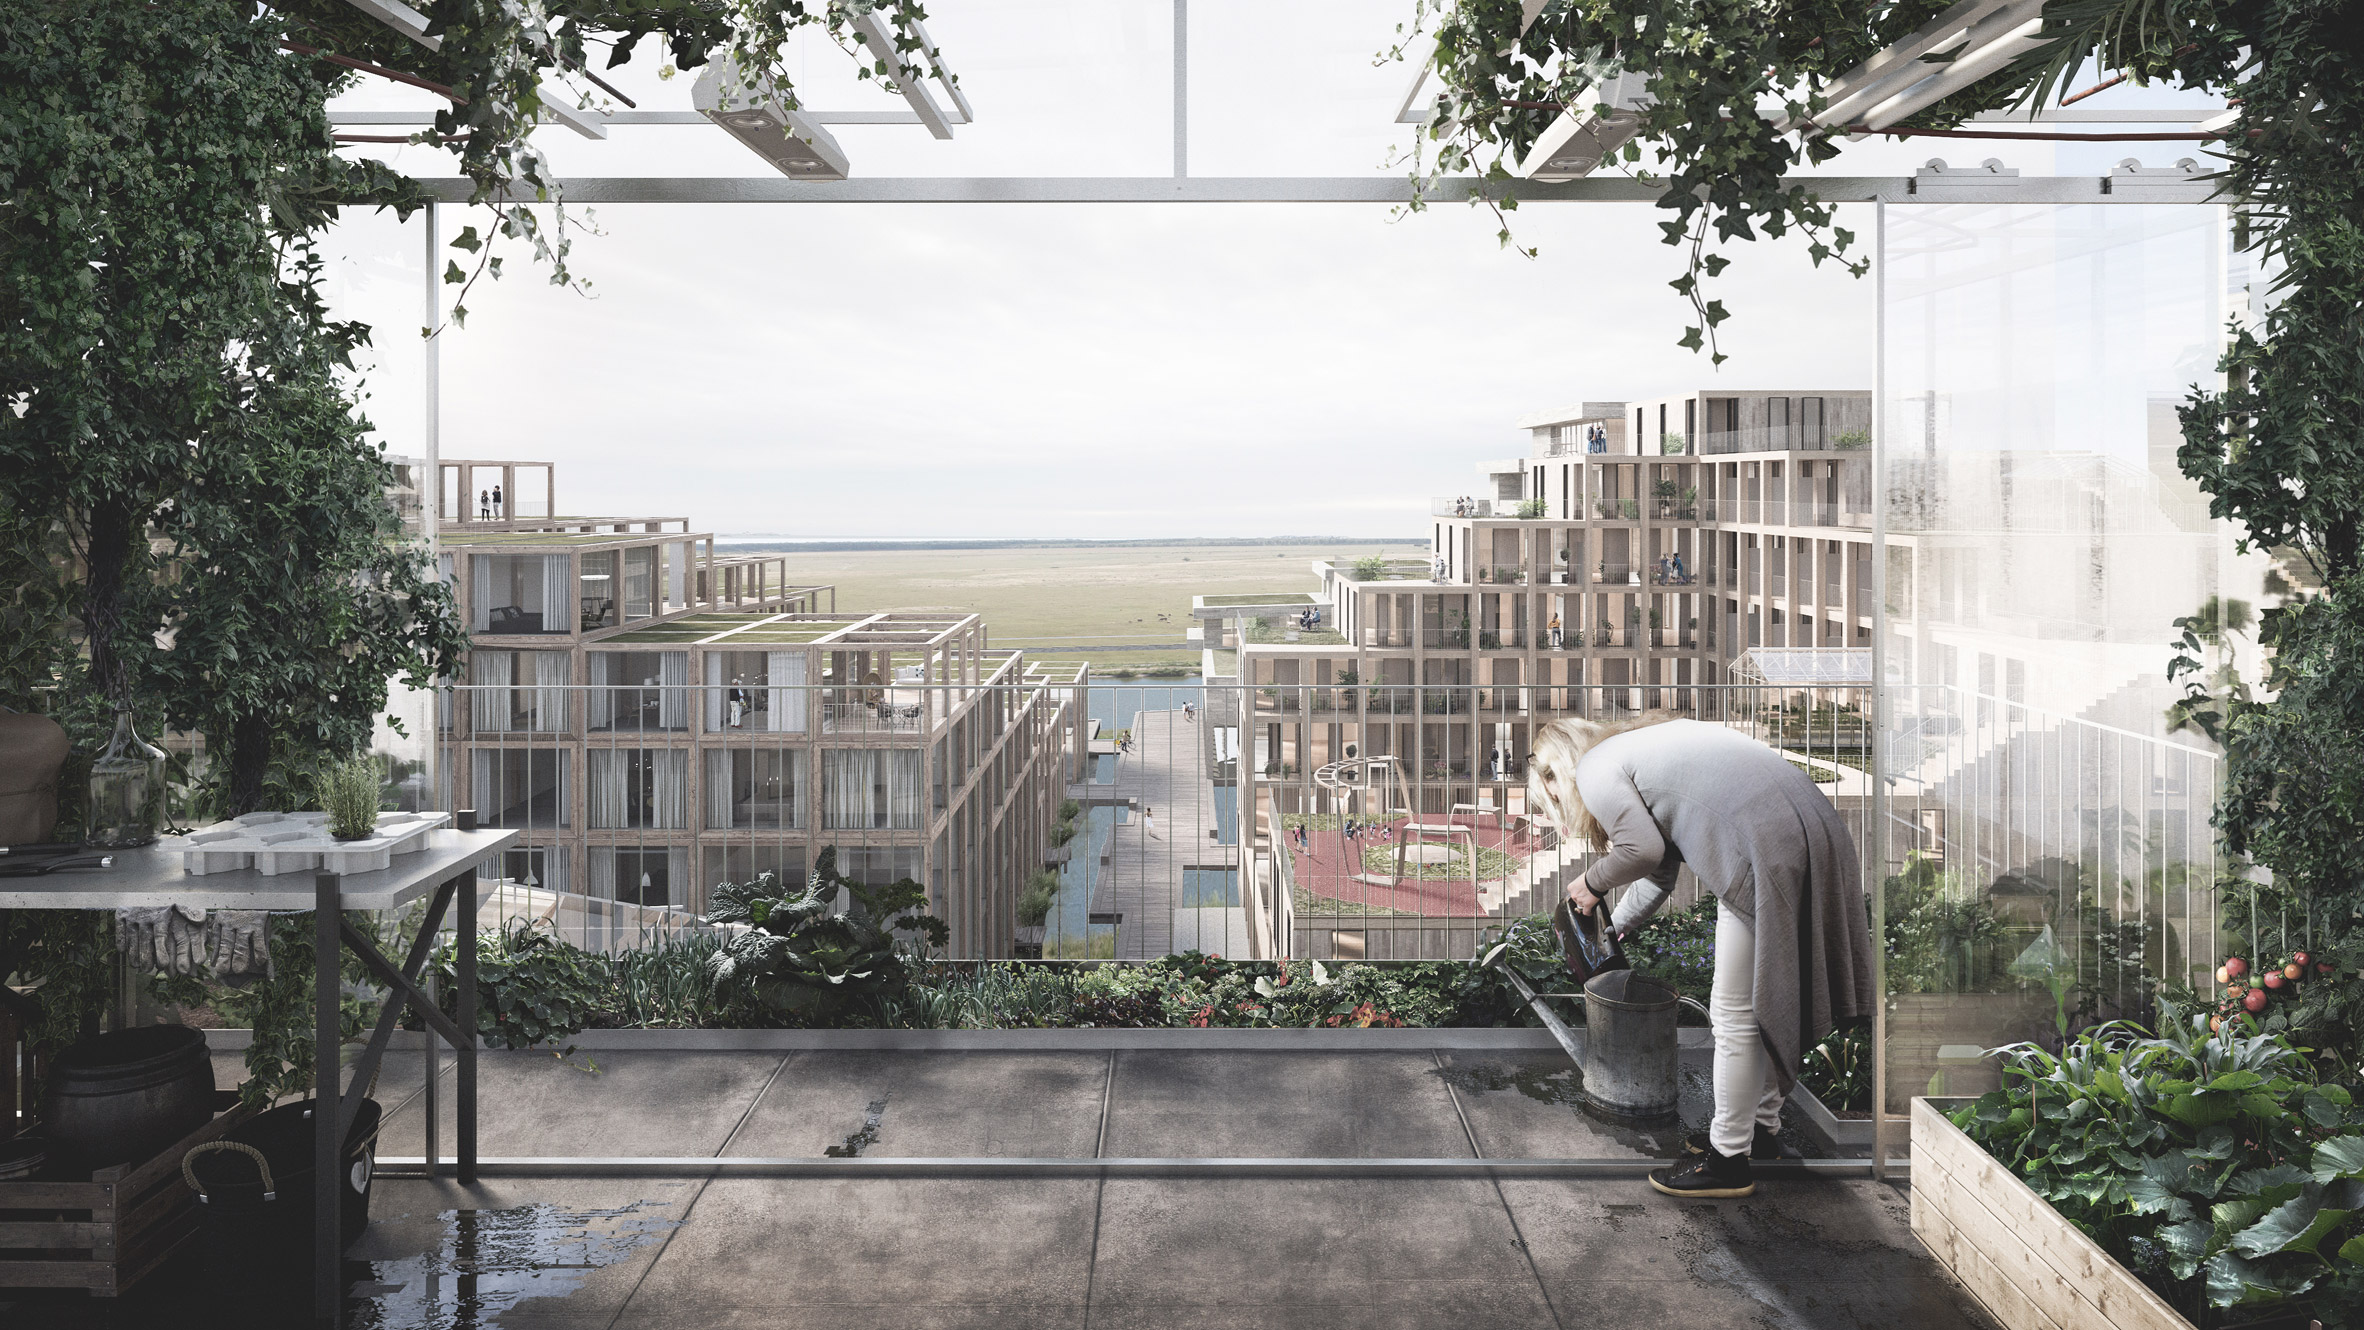 UN17 Village to be built in Copenhagen with recycled materials by Lendager Group andÅrstiderne Arkitekter